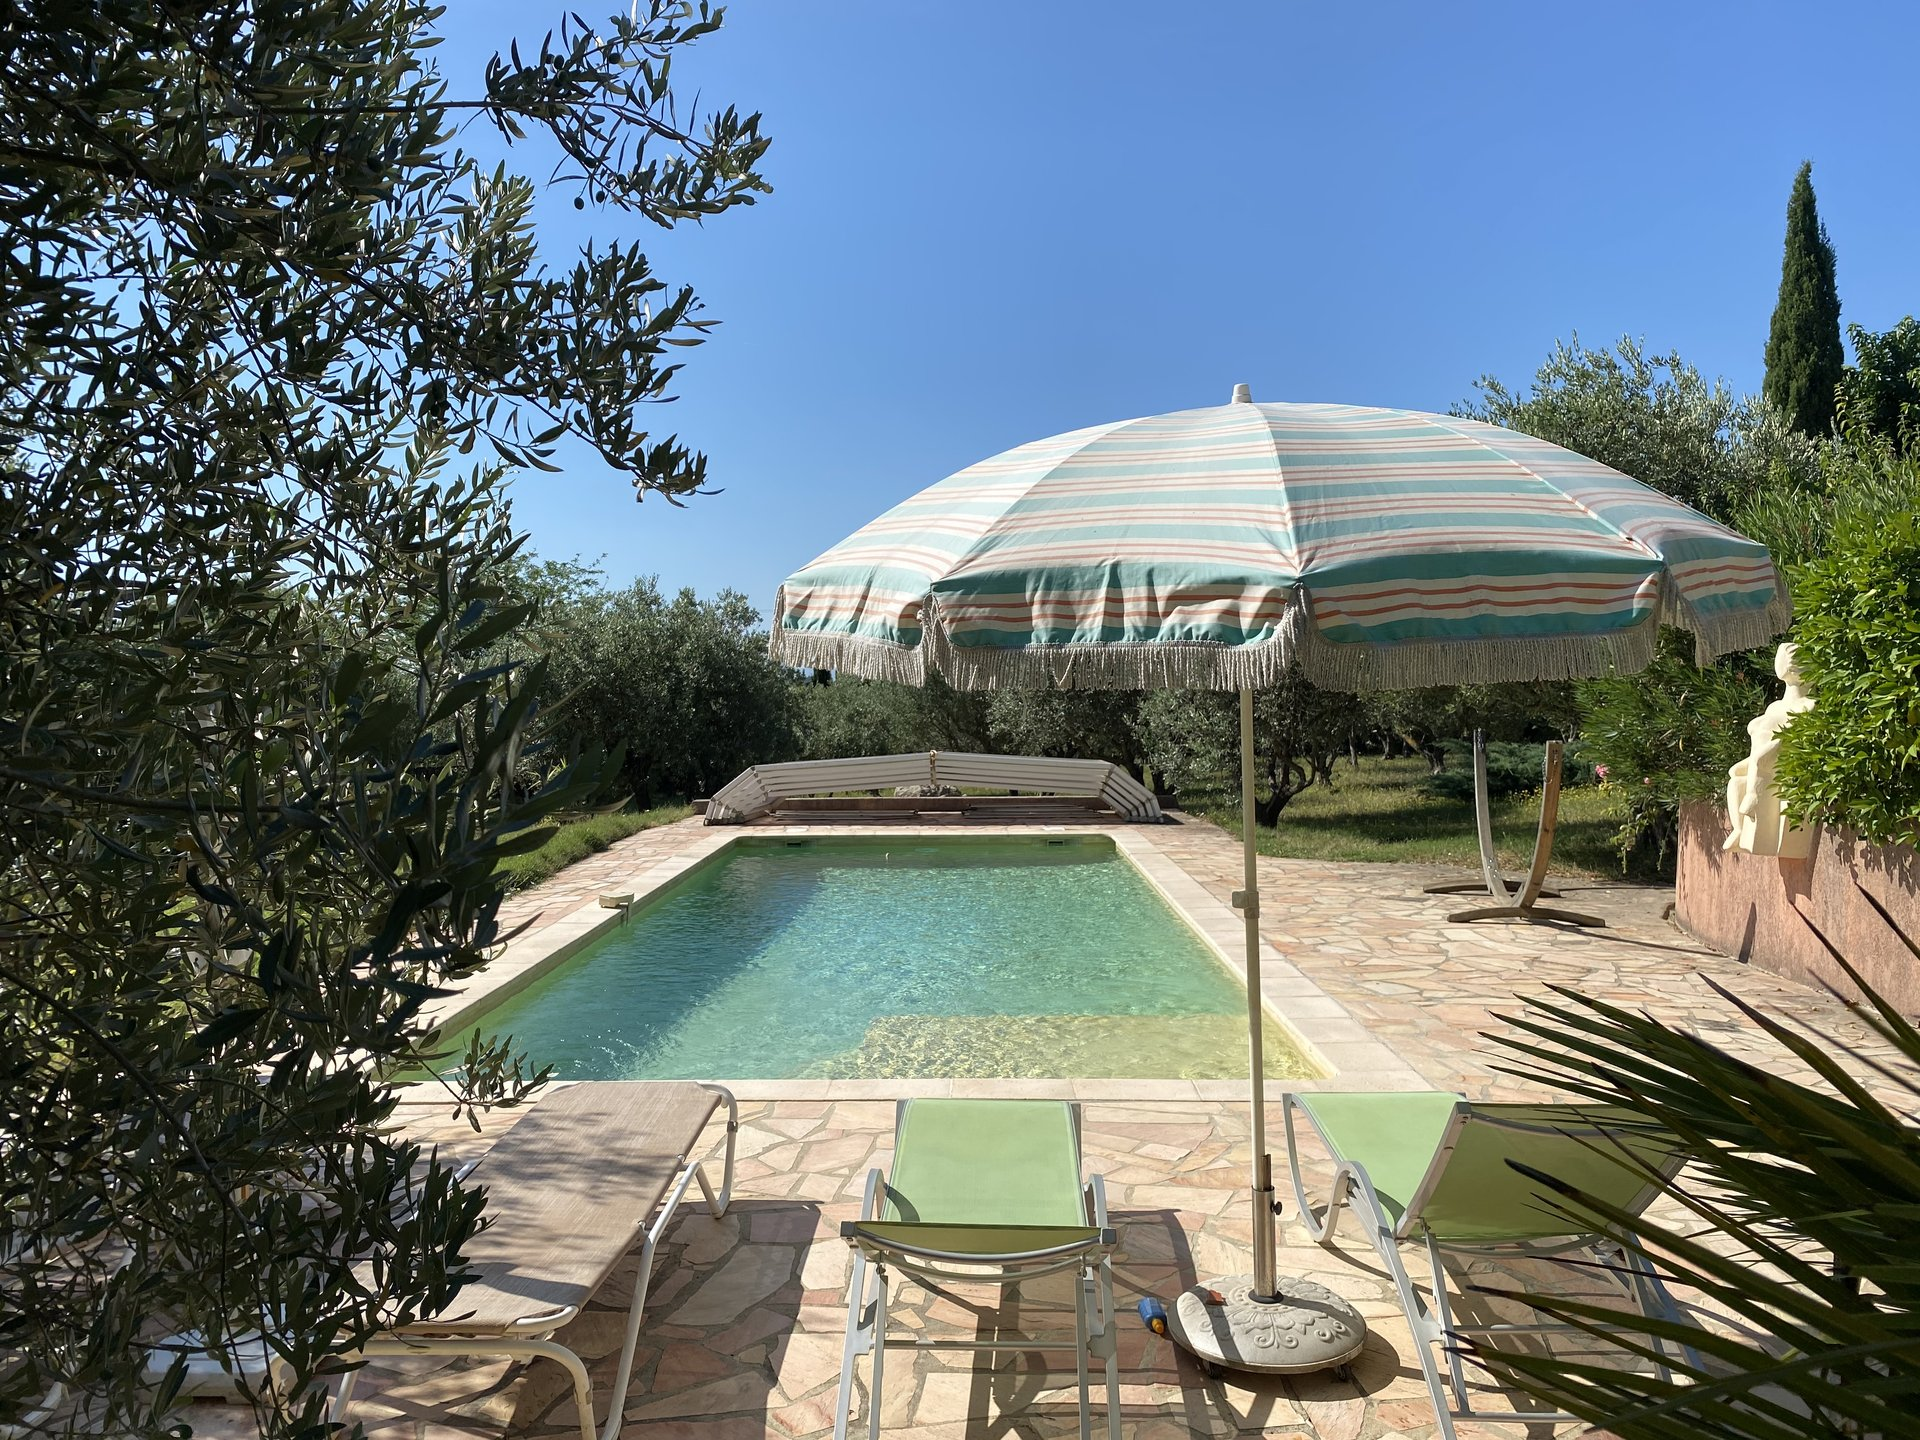 ON FOOT OF THE VILLAGE - RENOVATED PROVENCAL MAS WITH SWIMMING POOL